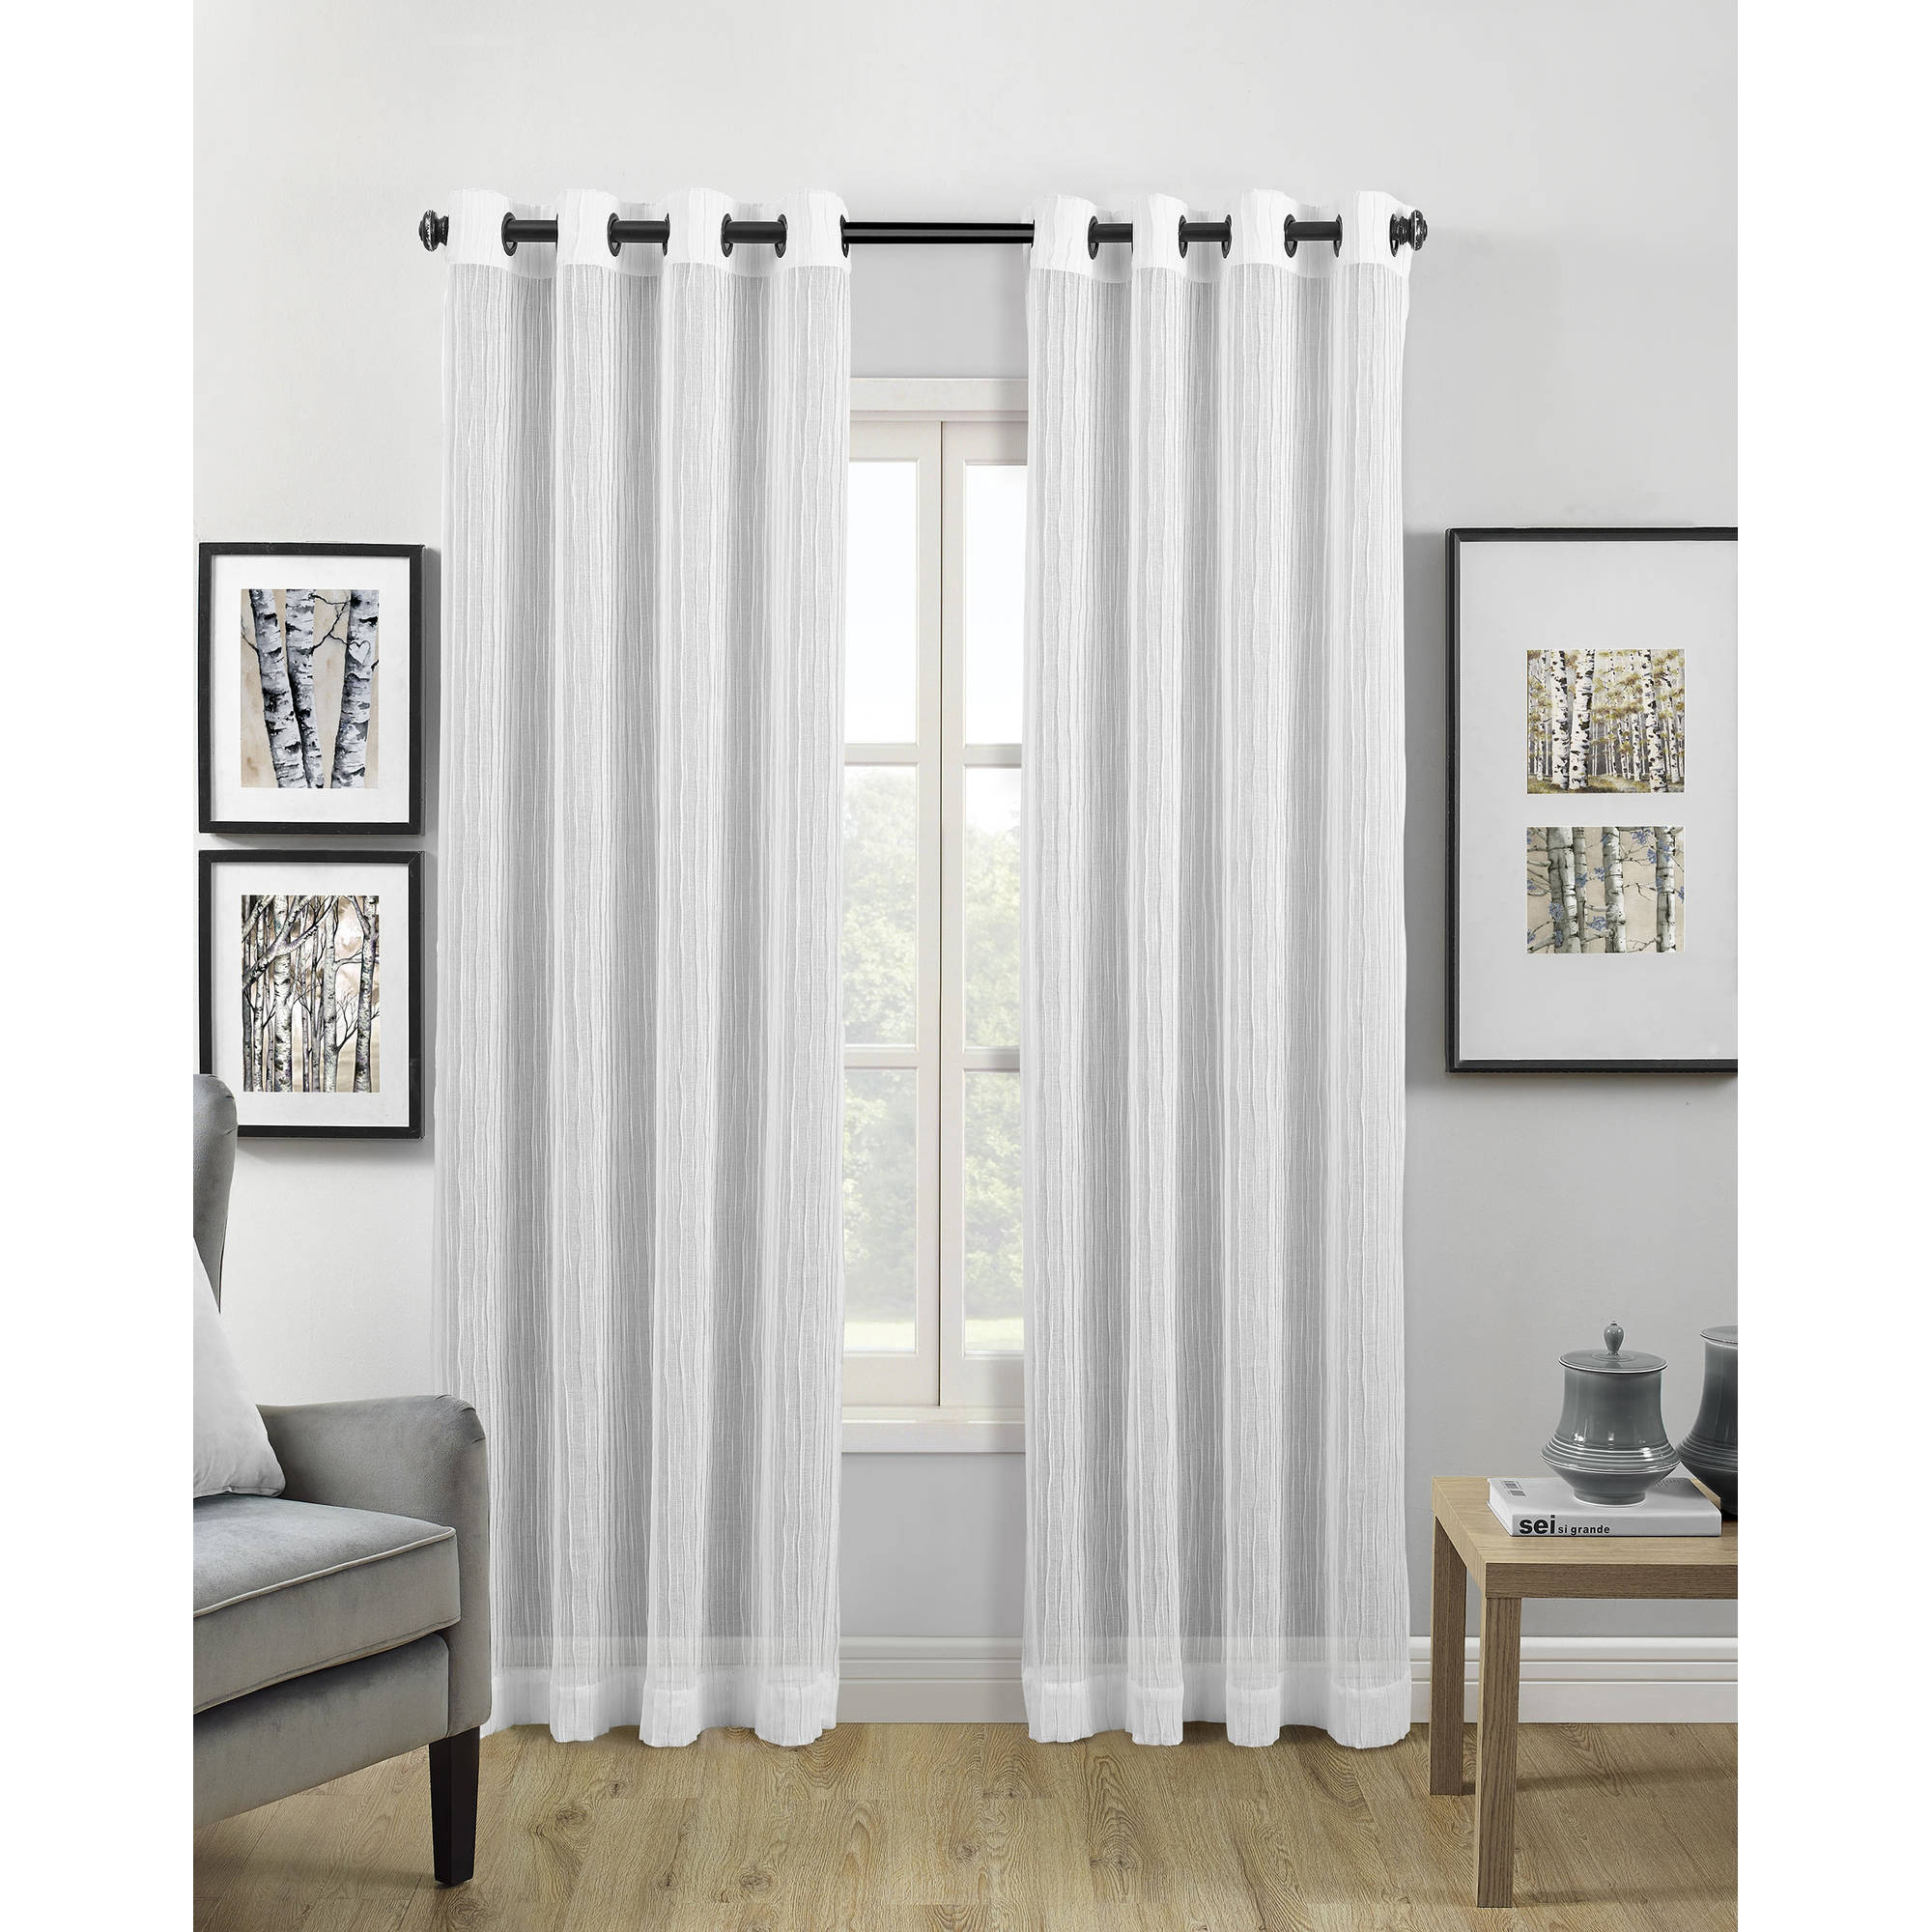 Richloom Zibo Curtain Panel